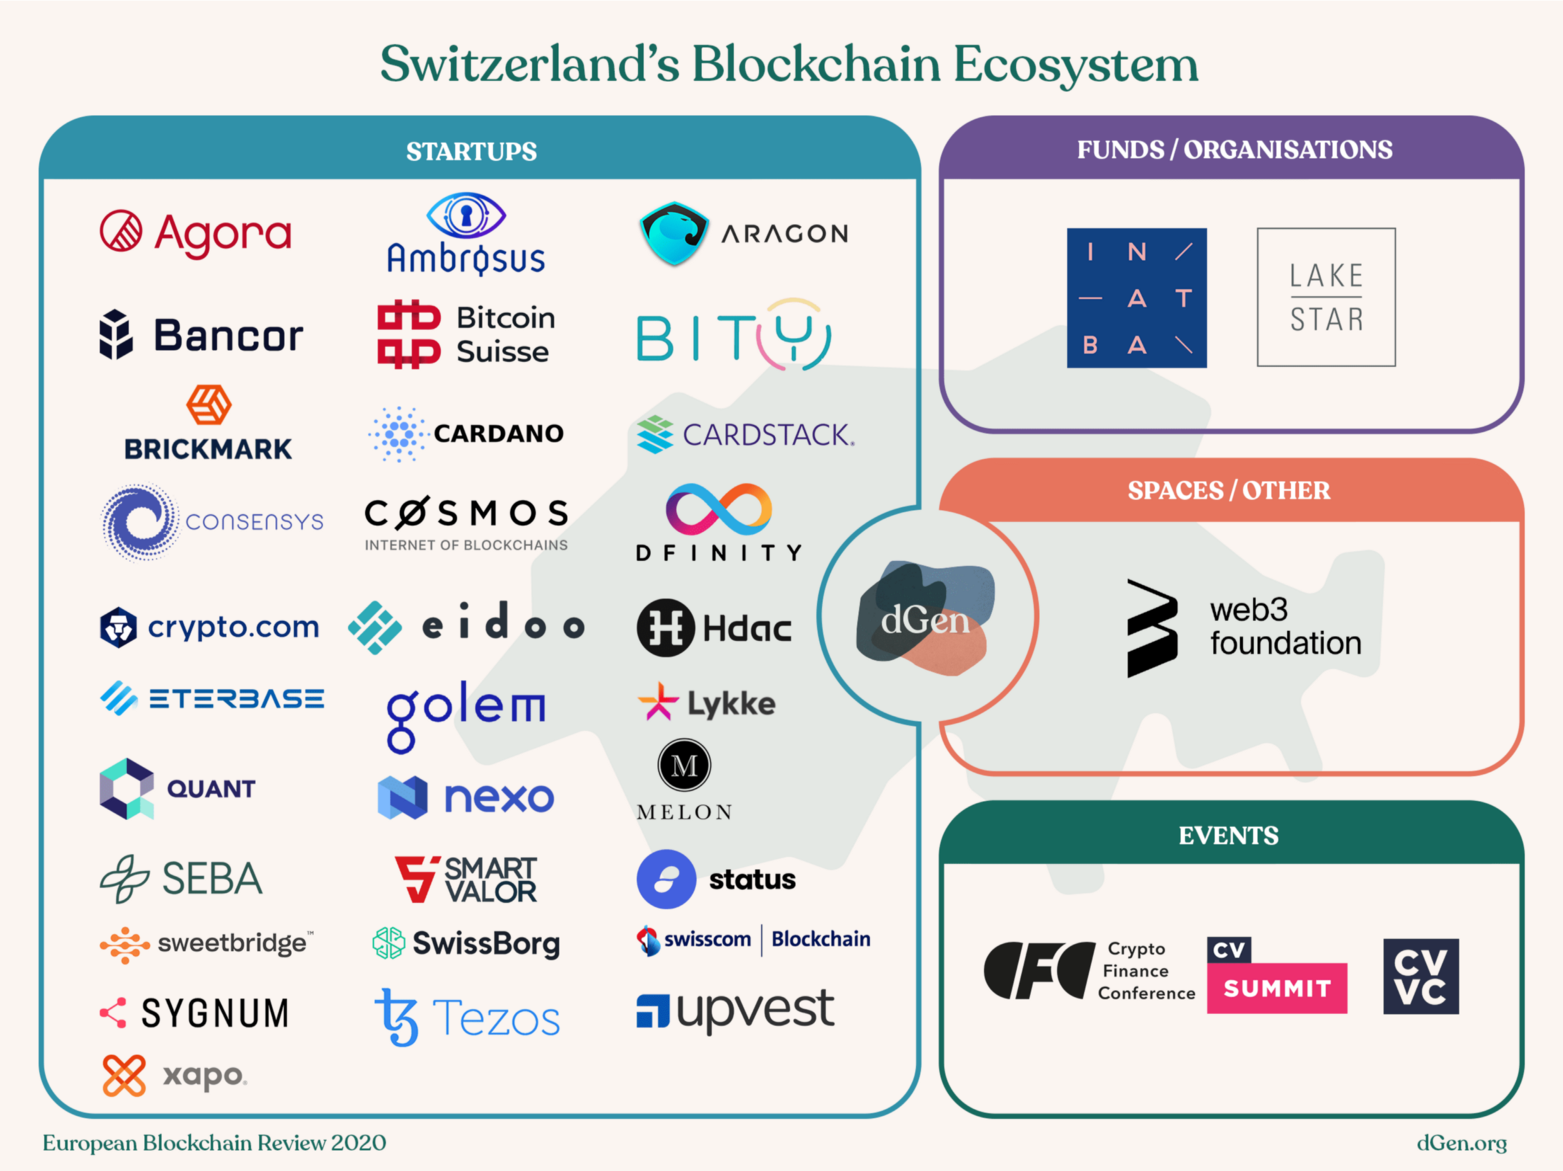 List of major blockchain players, box for startups, funds/organisations, spaces/other, and events.